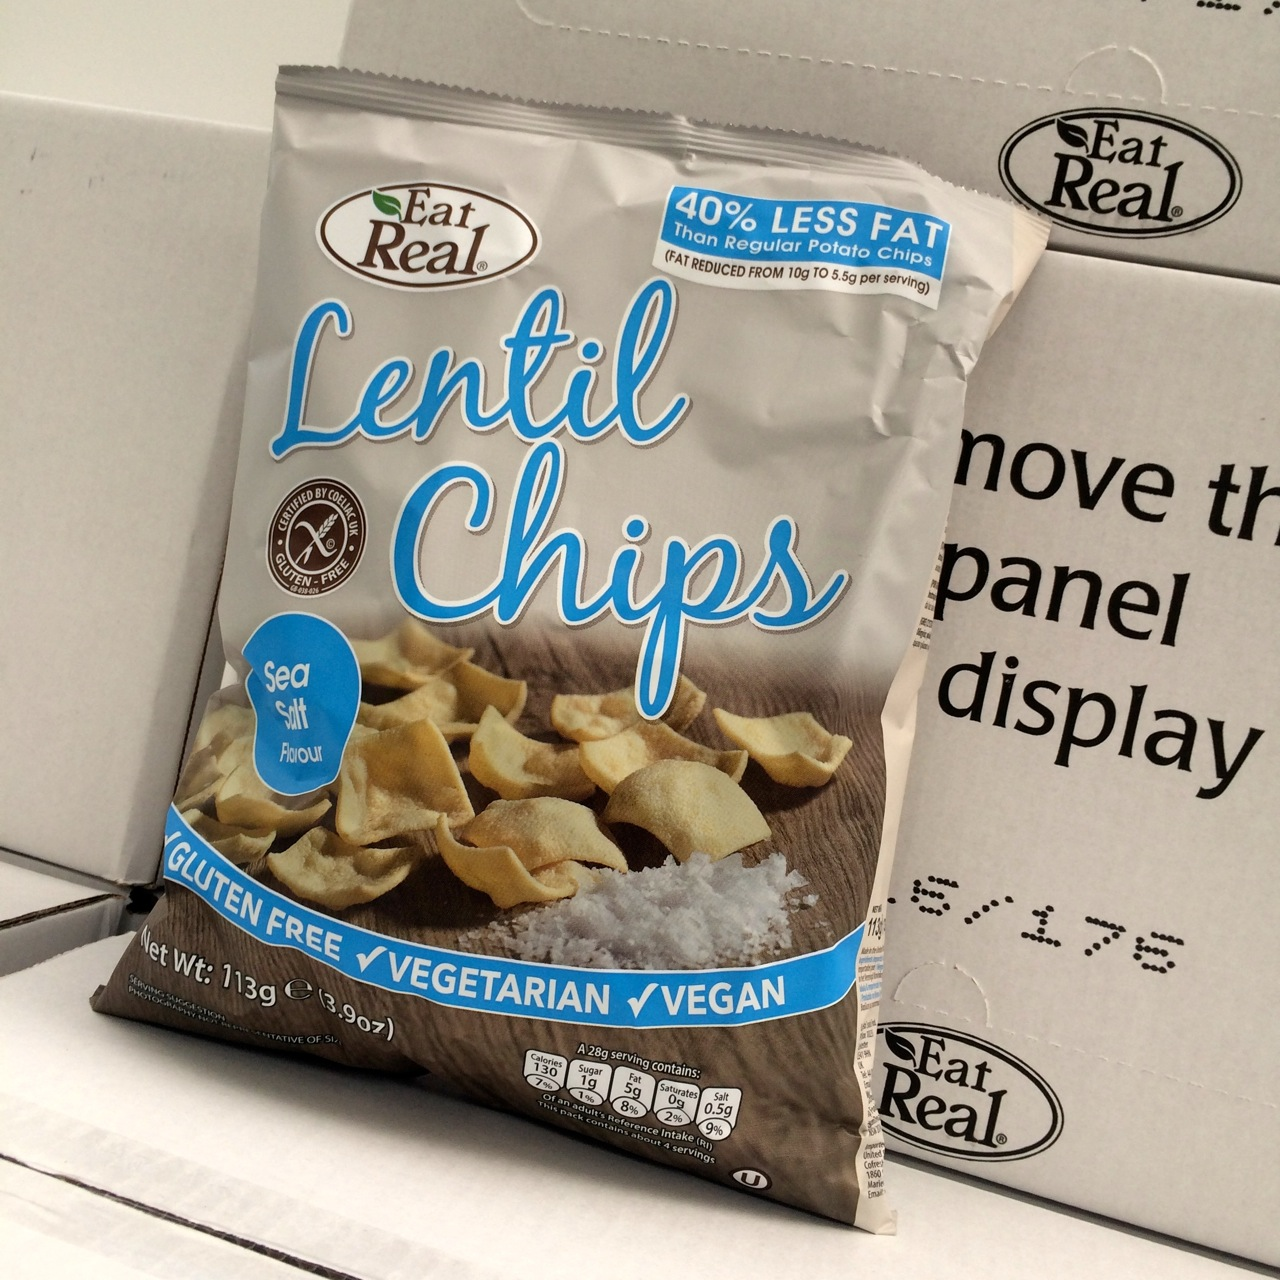 https://i1.wp.com/fatgayvegan.com/wp-content/uploads/2015/07/Lentil-chips-at-Just-V-Show.jpg?fit=1280%2C1280